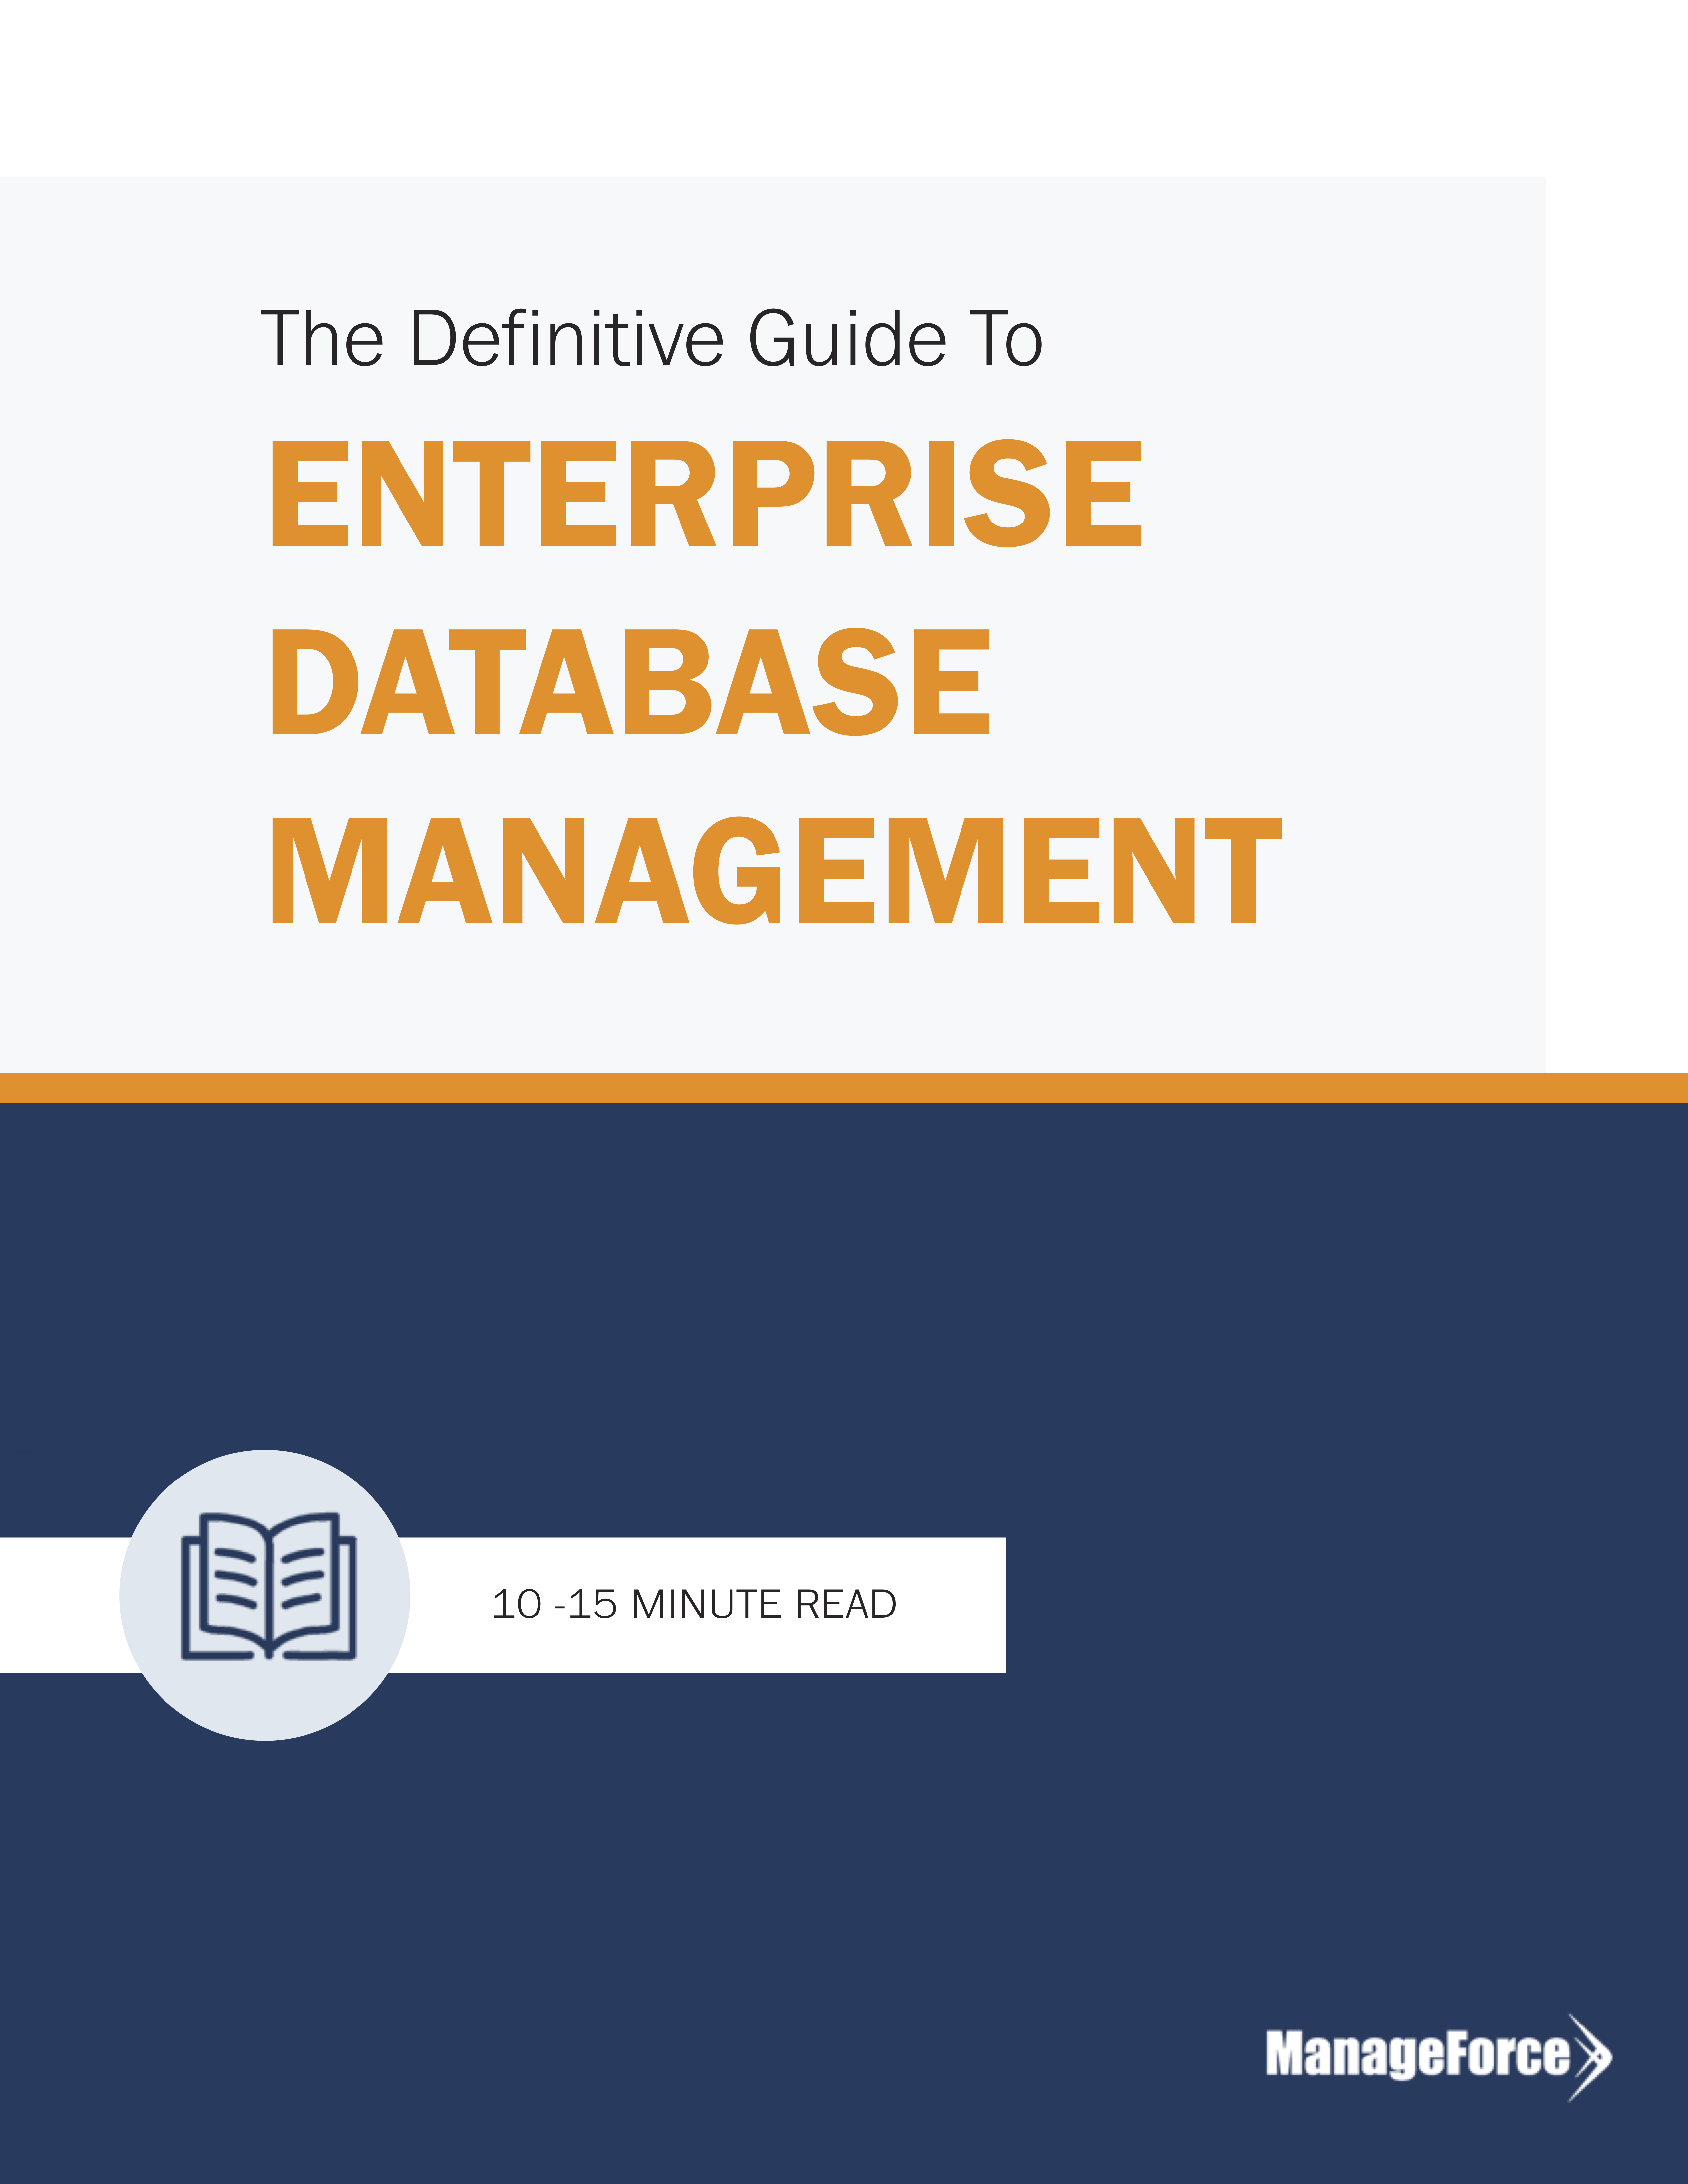 Definitive Guide to Database Management Cover Image.png